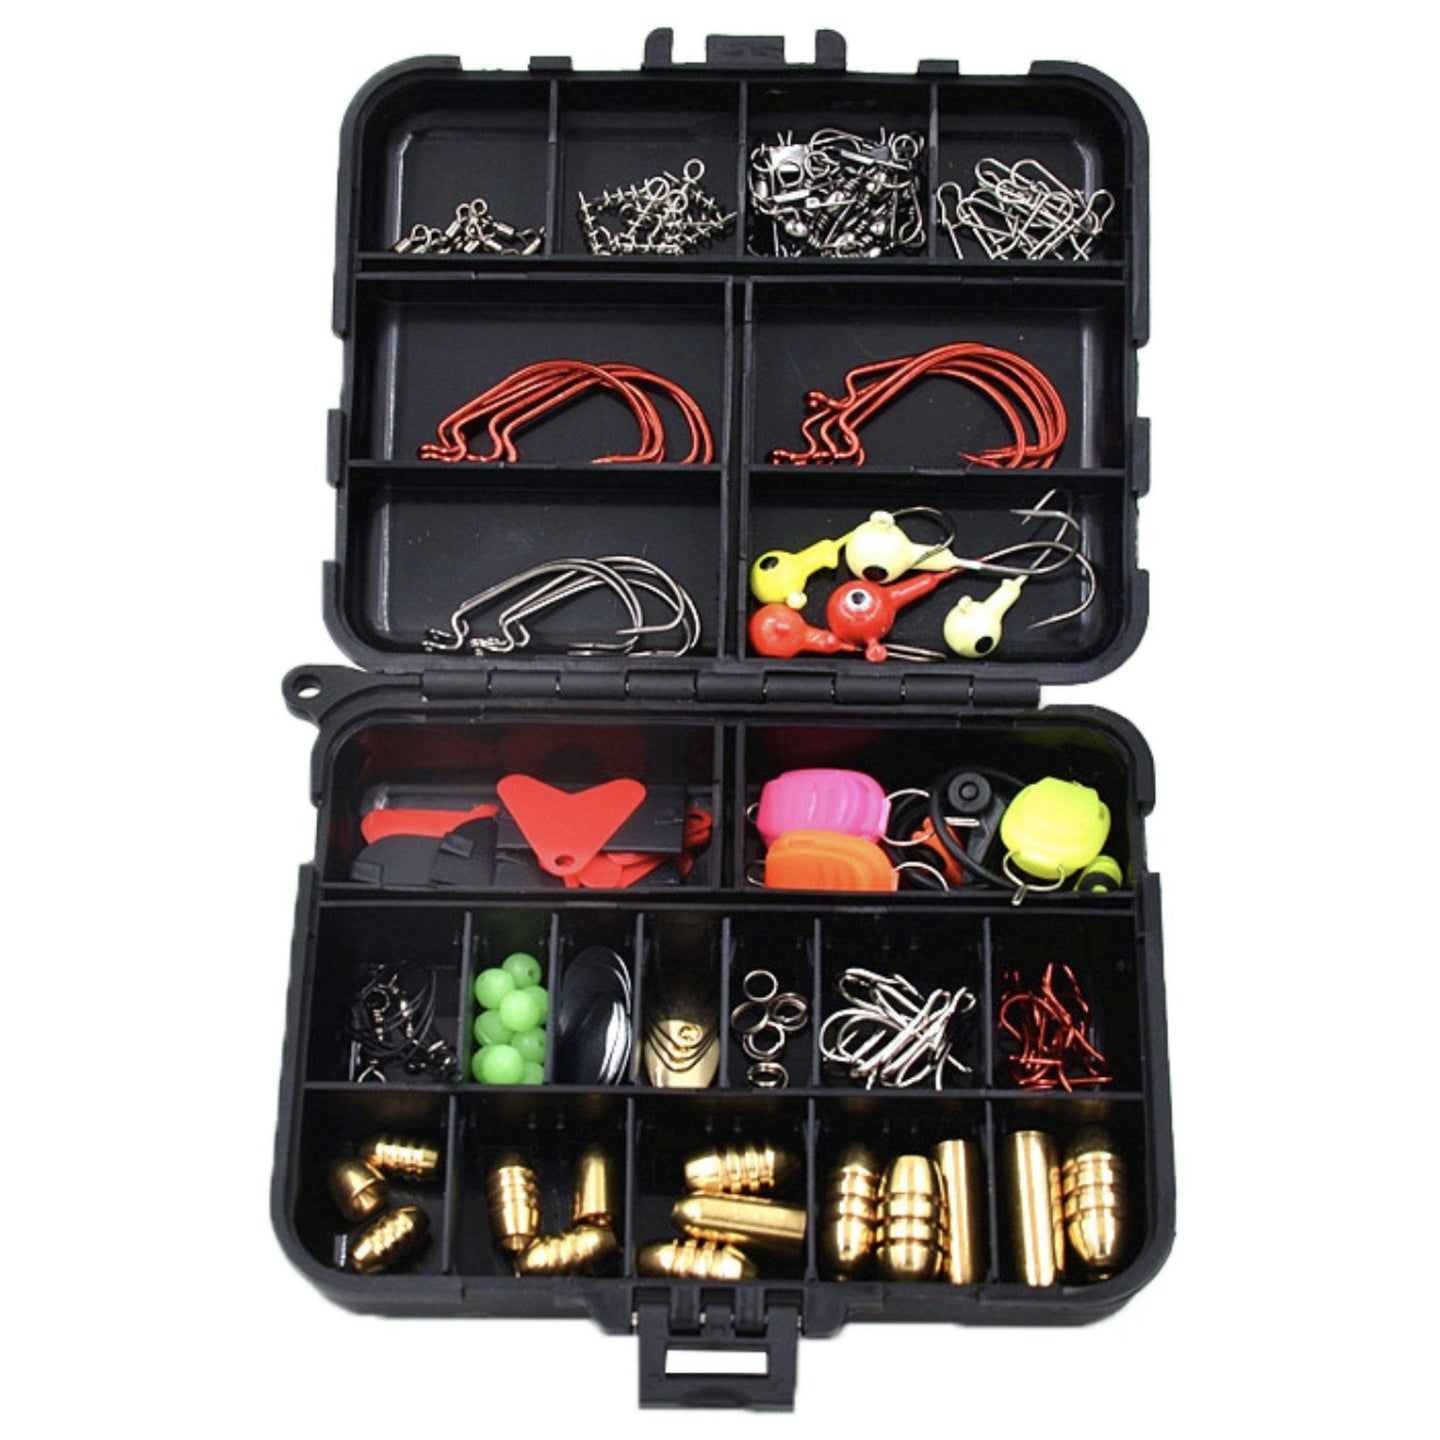 128Pcs Kit - Hard/Soft - Bait/Lure Fishhooks & Tools - Tackle Box Set for Saltwater & Freshwater-Kayak Shops